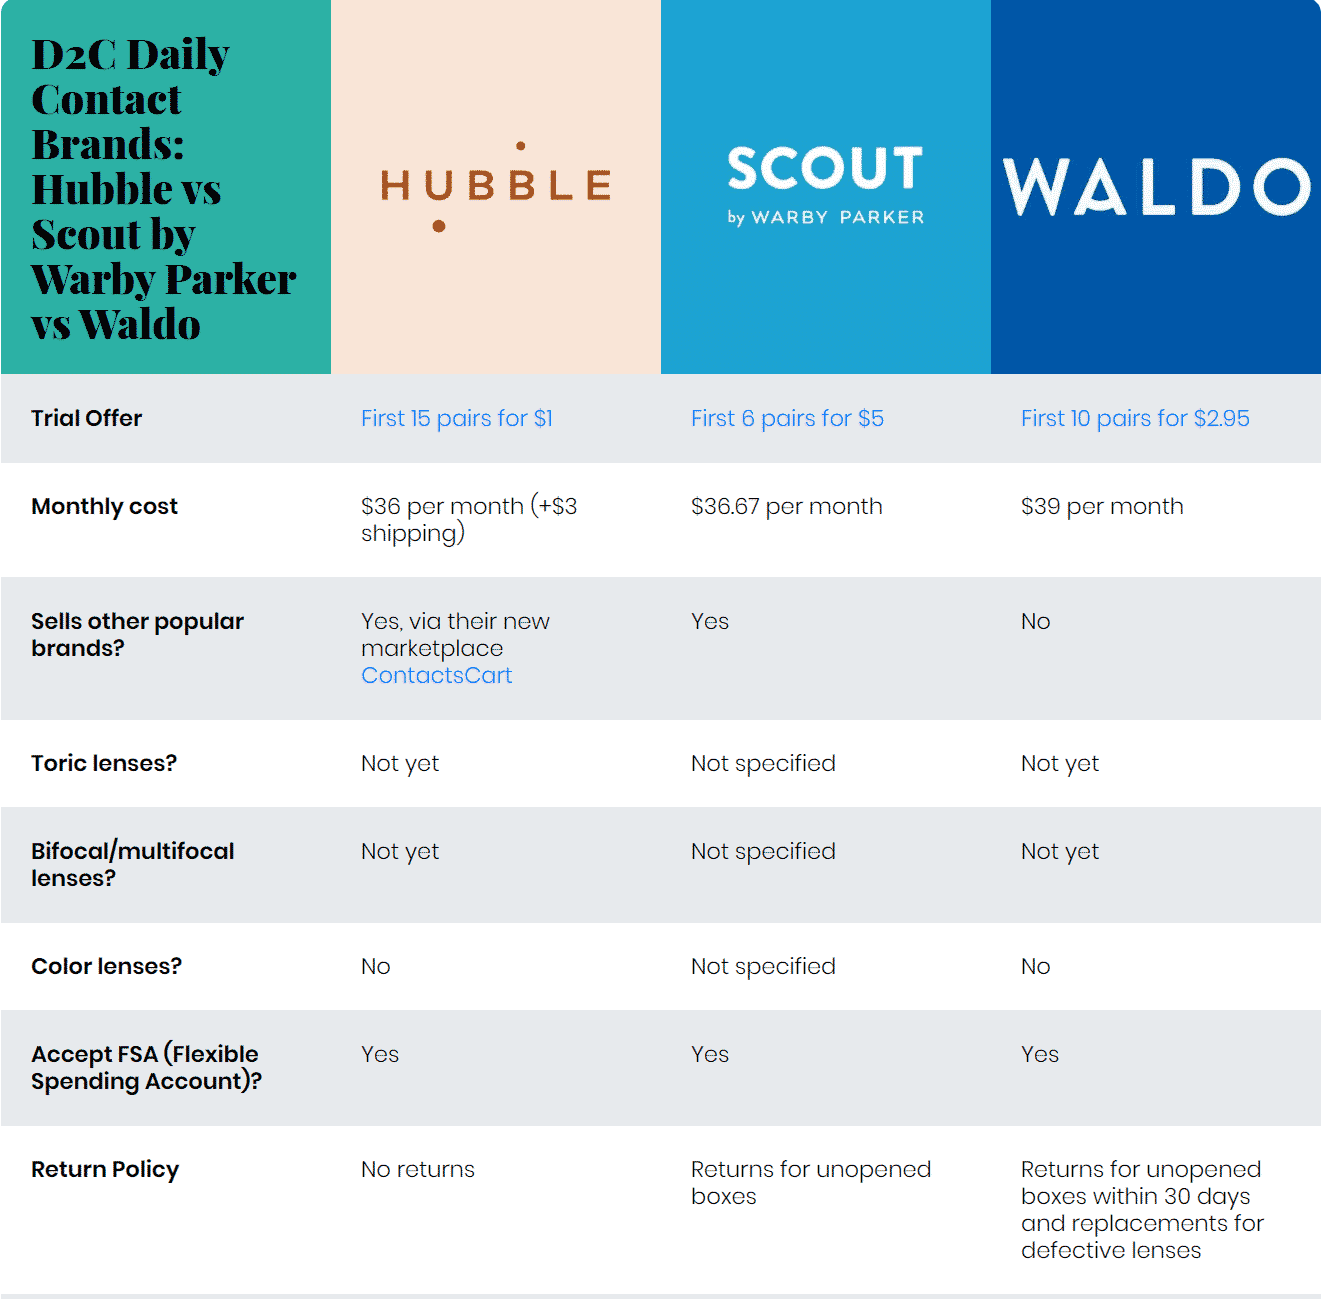 D2C Daily Contact Brands: Hubble vs Scout by Warby Parker vs Waldo Hubble